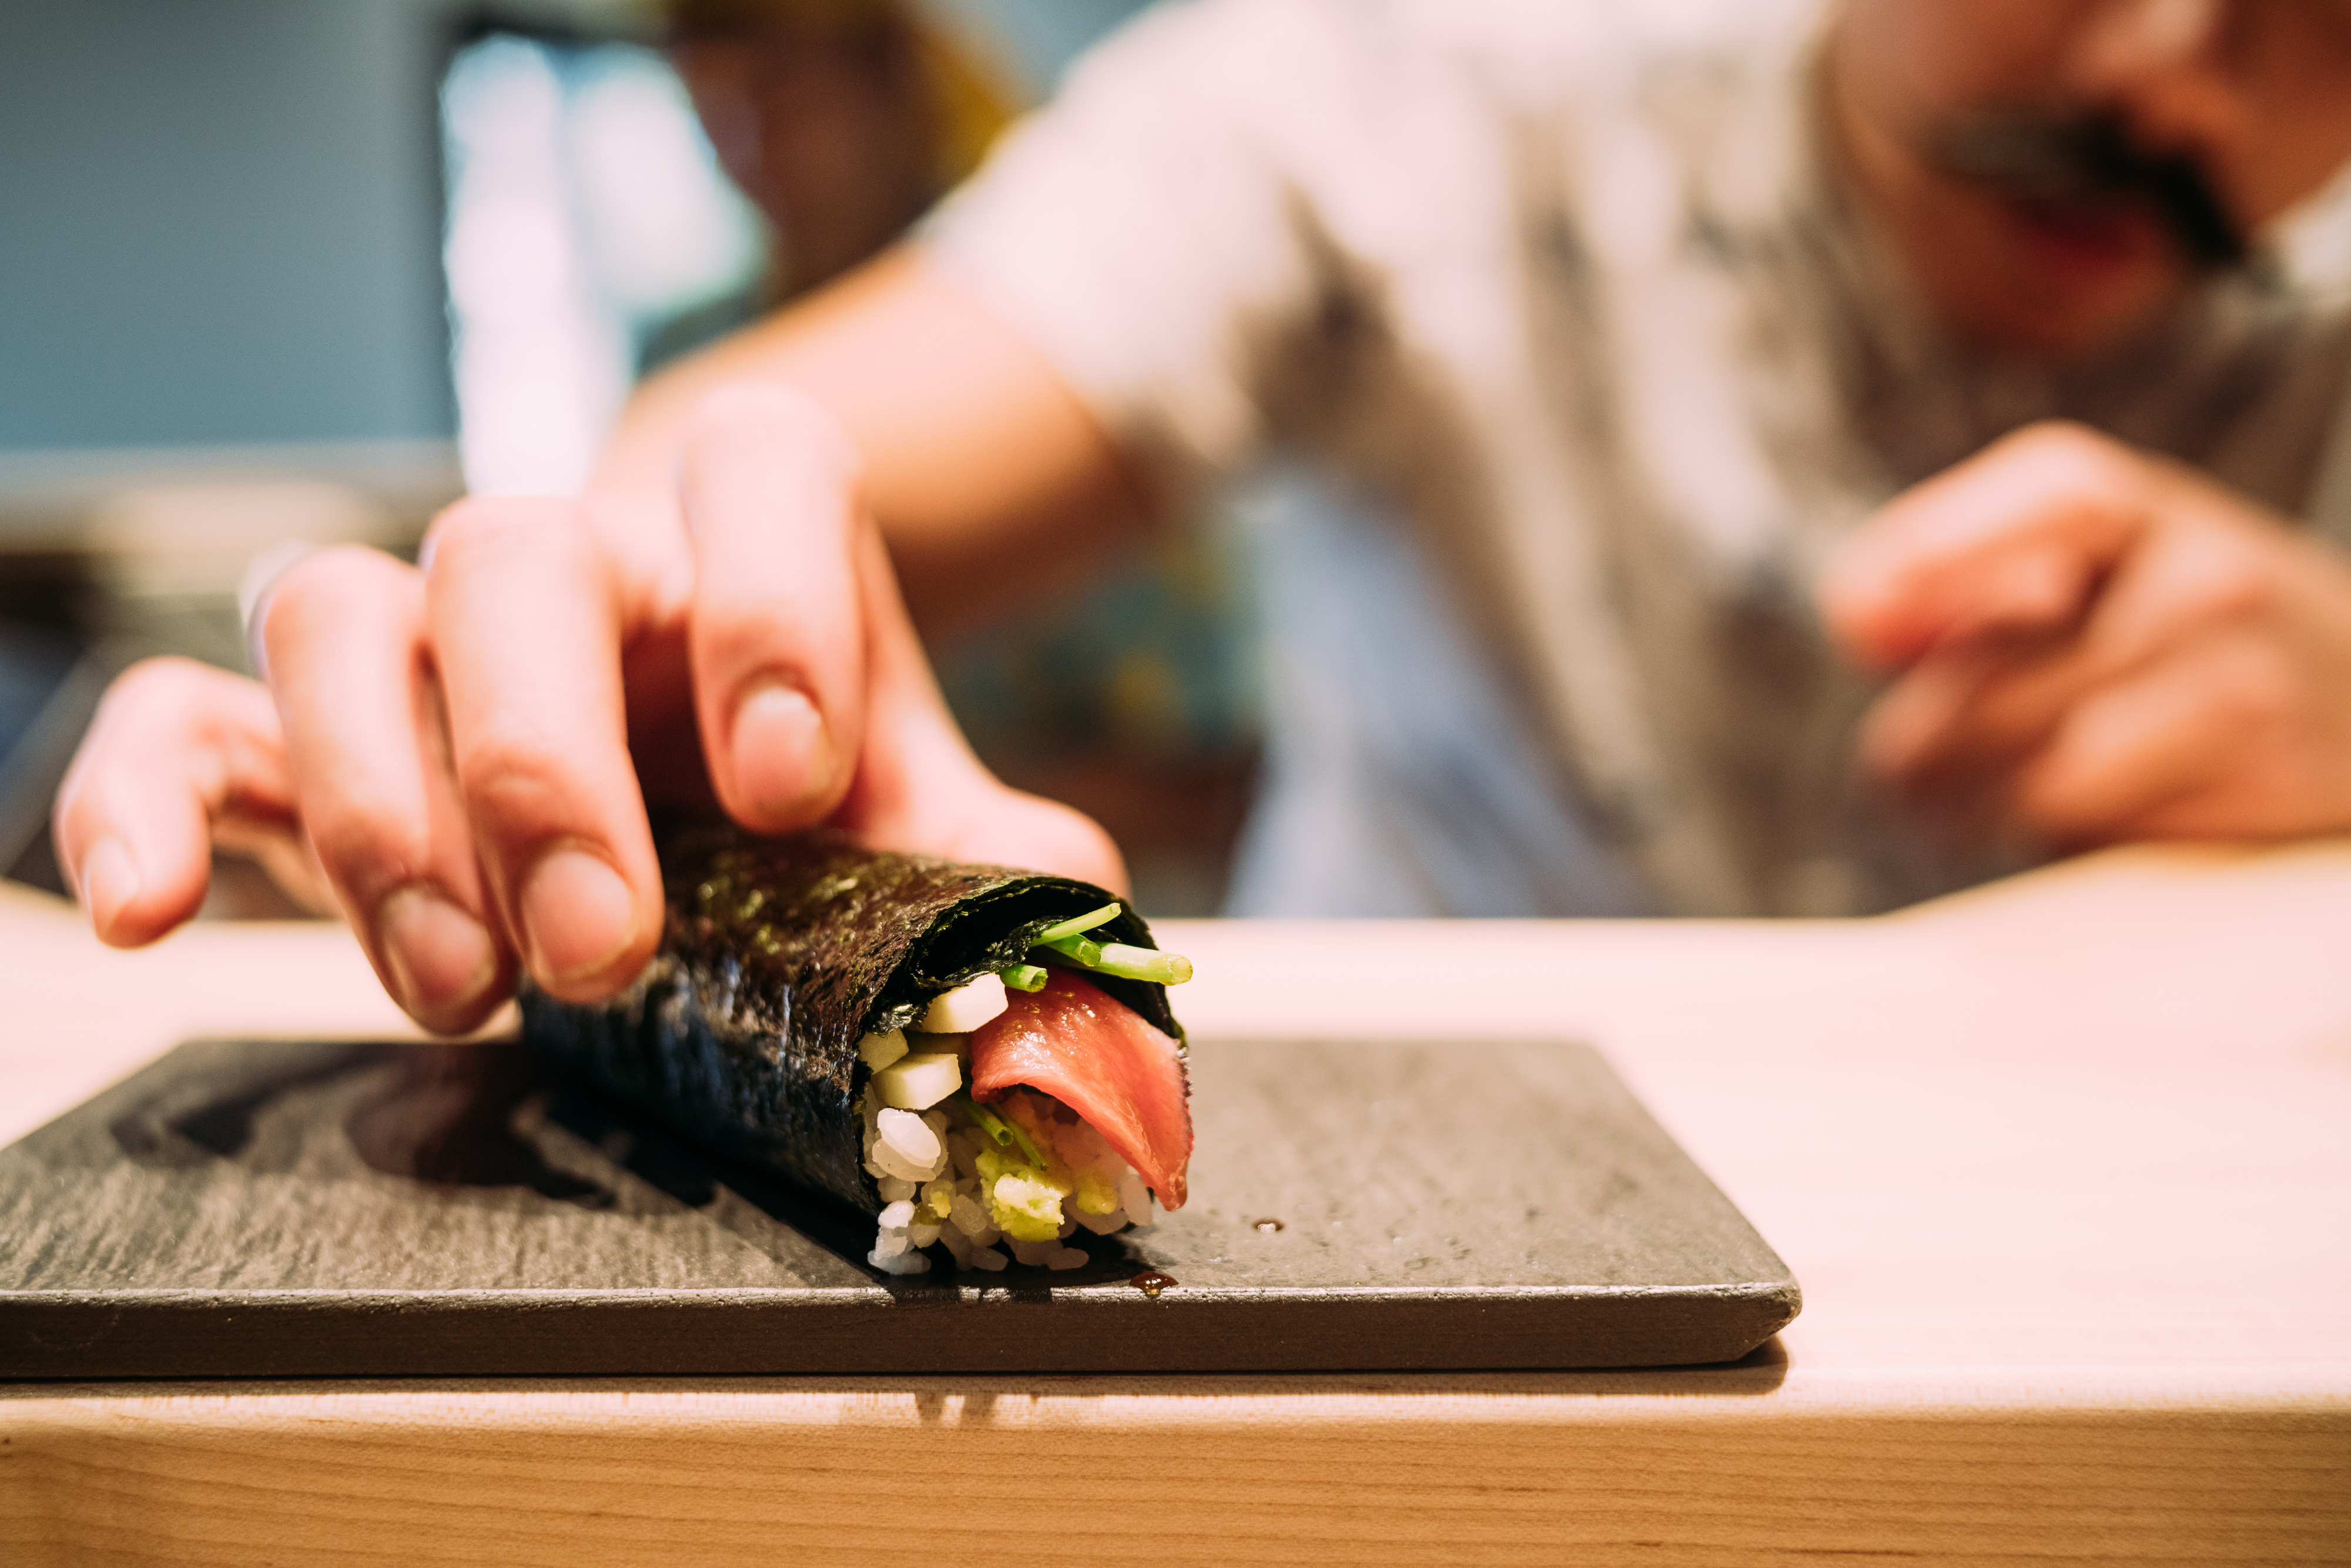 A chef places a crab-stuffed handroll on a serving plate